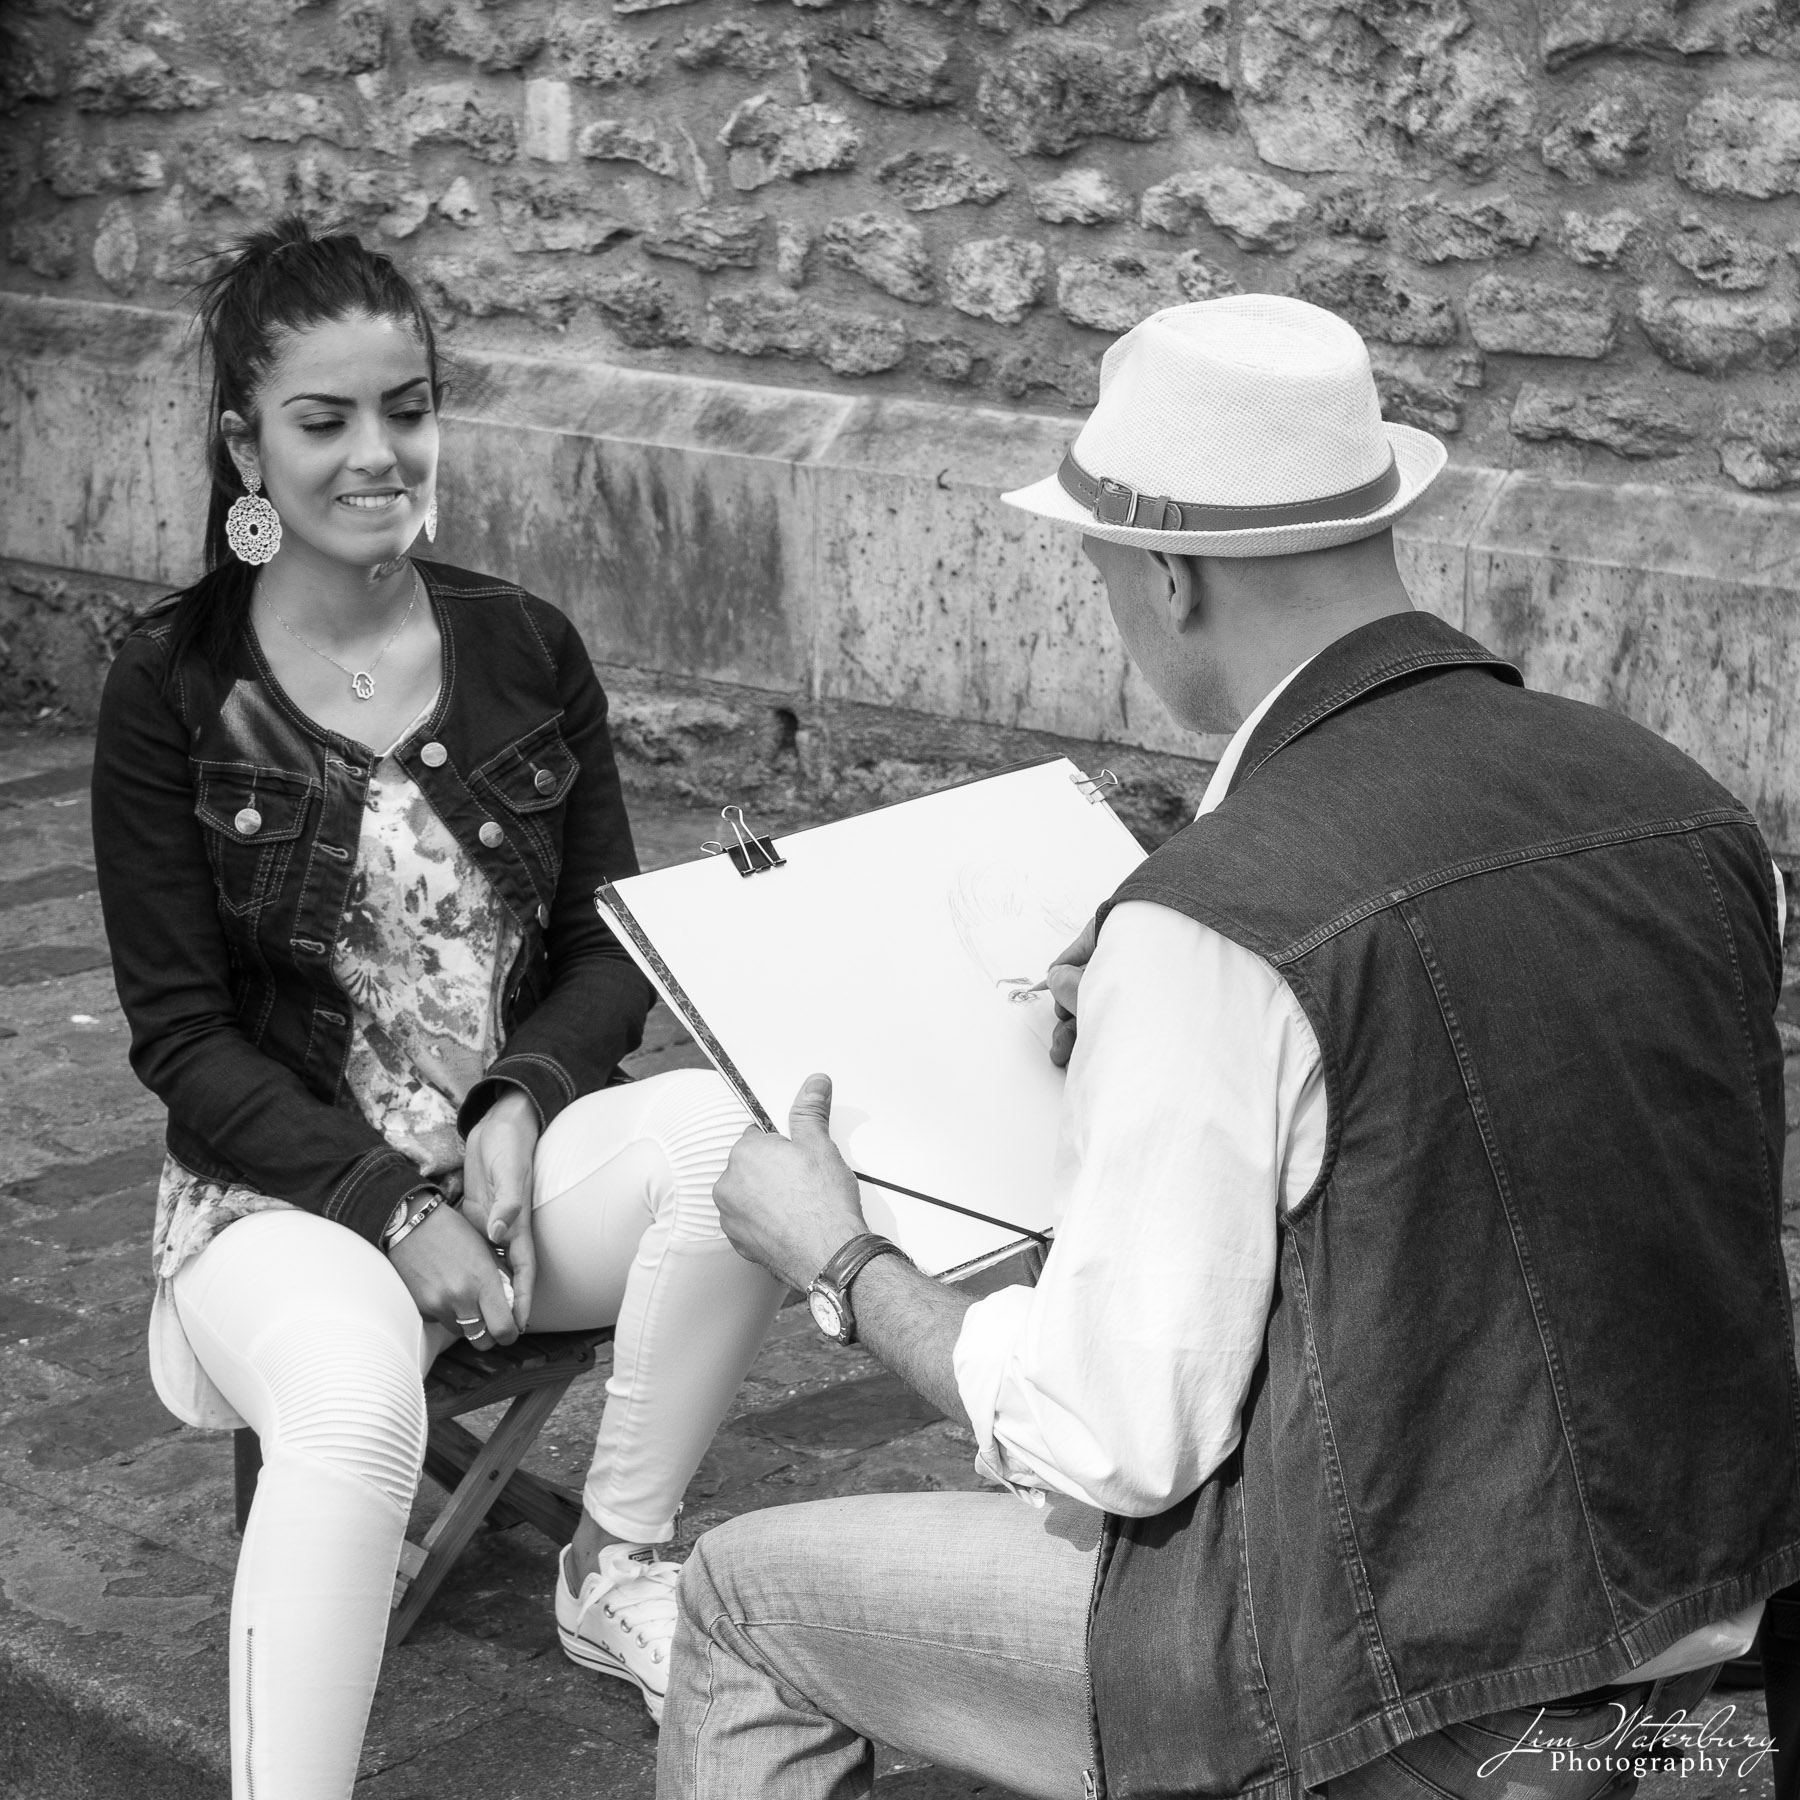 Artist in Montmartre, Paris, begins a charcoal drawing of a young woman.  Black & white.